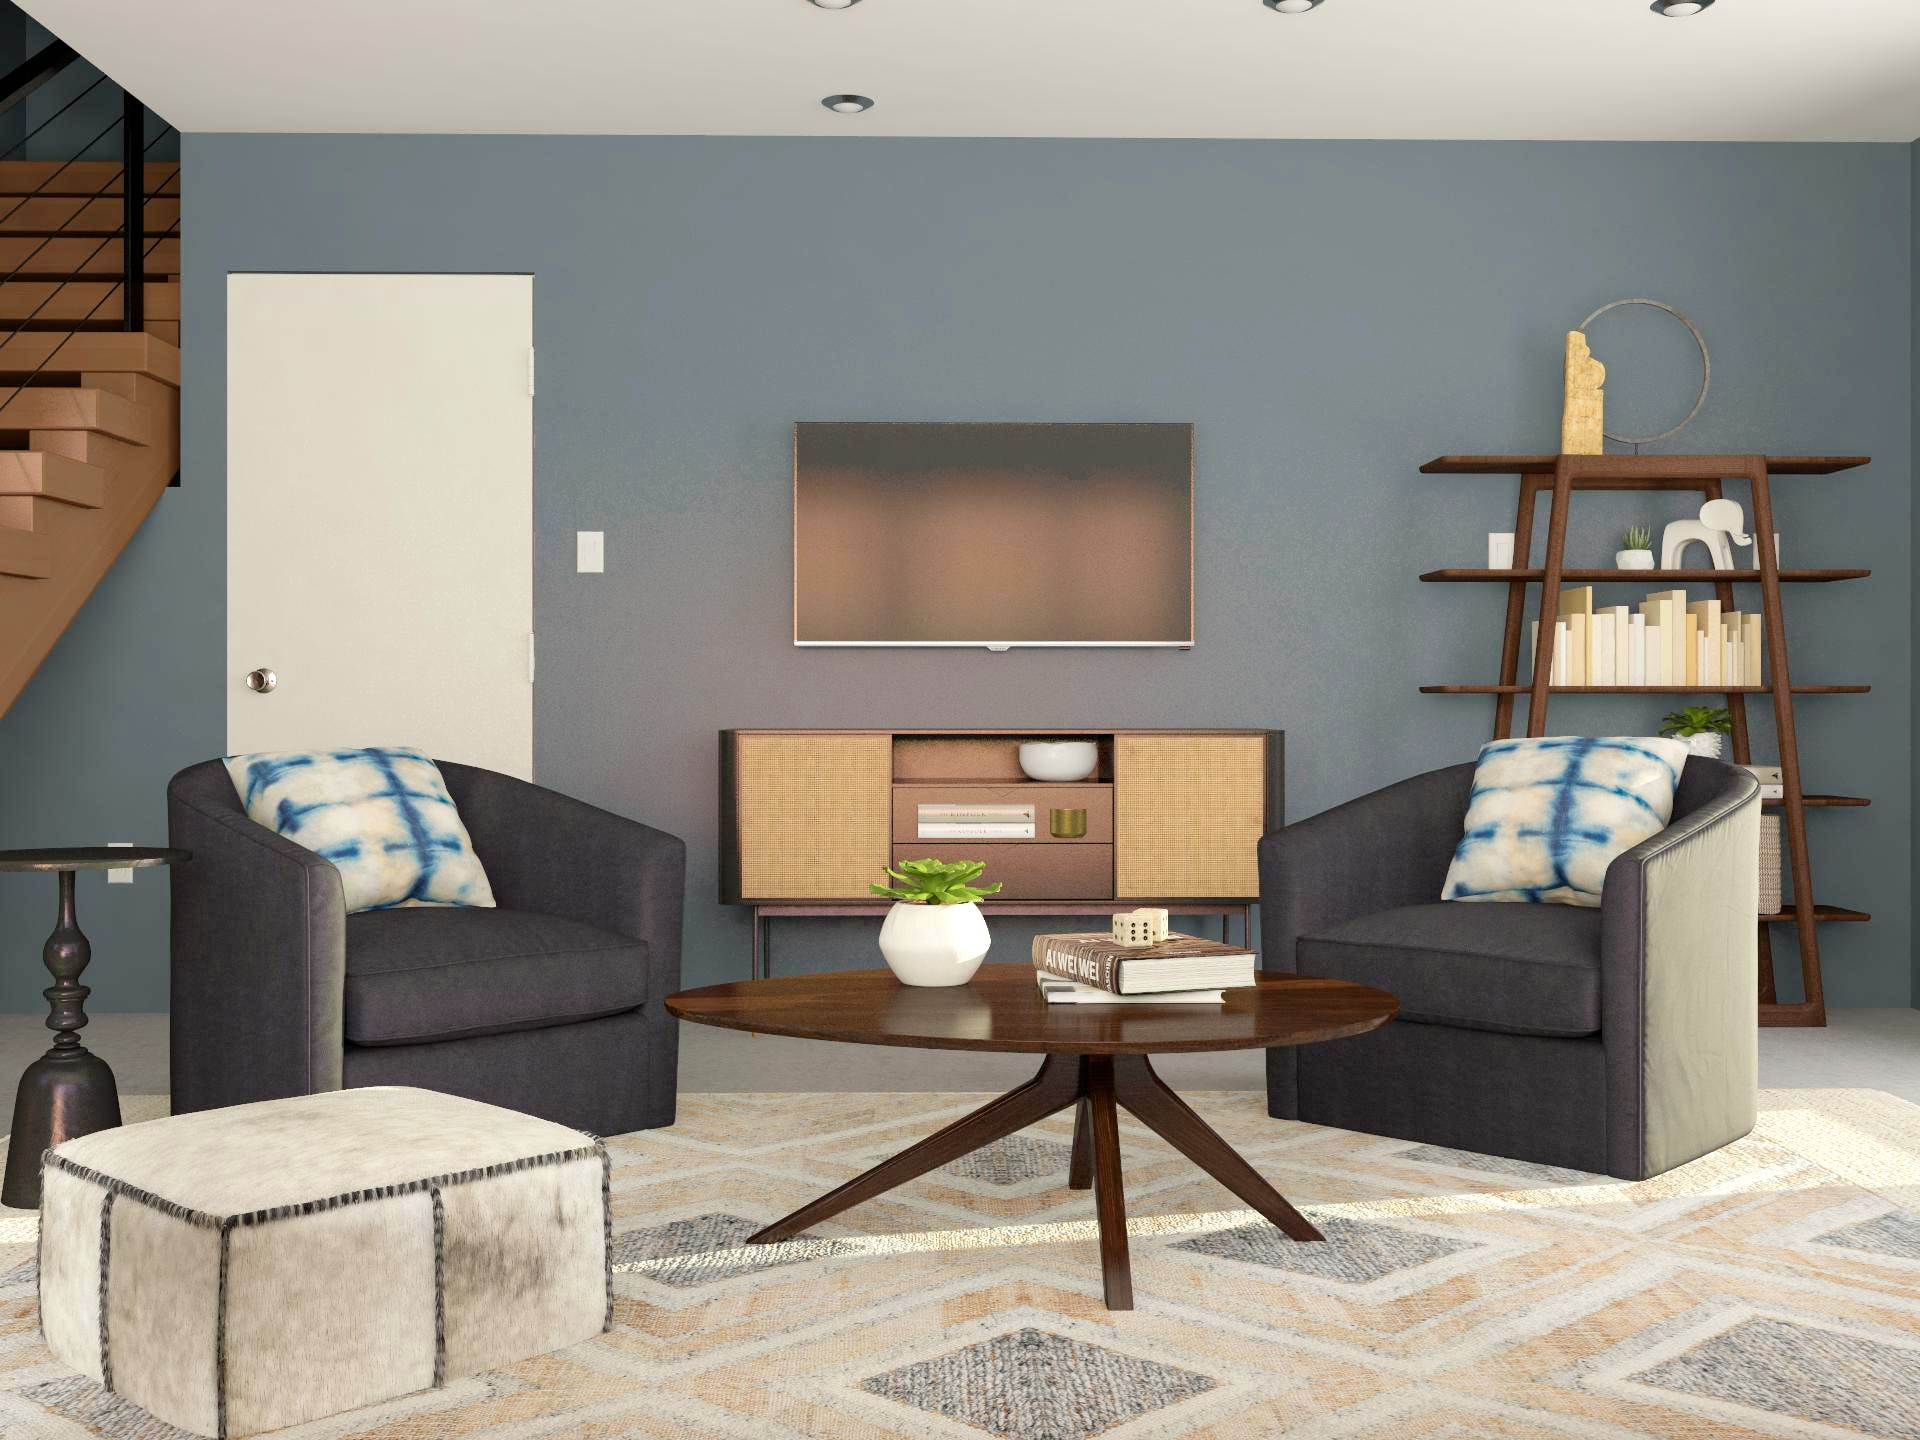 Moody Living Room In Dark Tones With Contemporary Styling